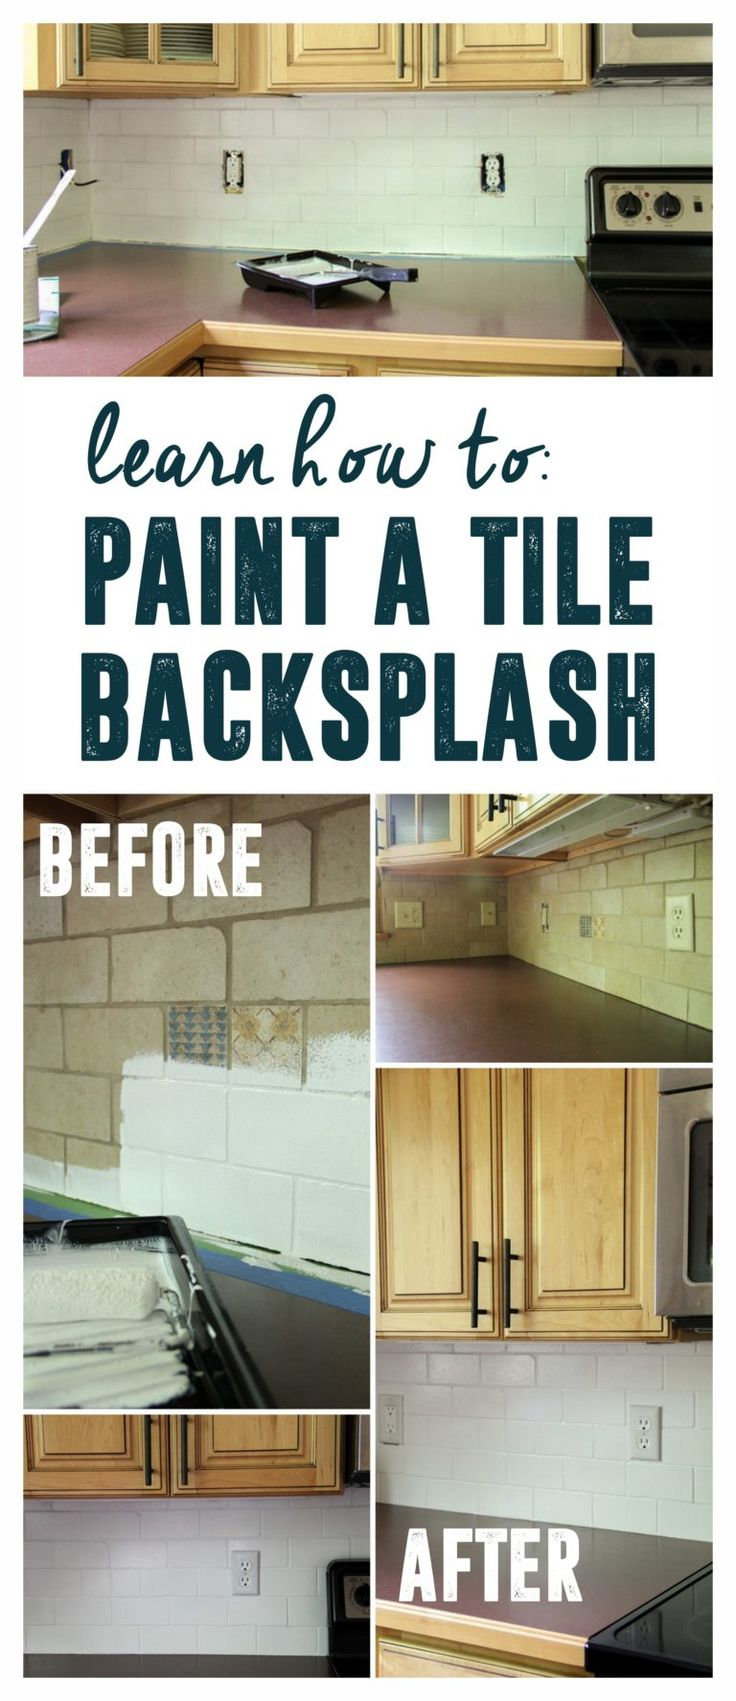 The 25 best painting tile backsplash ideas on pinterest the 25 best painting tile backsplash ideas on pinterest painting tiles painting kitchen tiles and paint backsplash dailygadgetfo Image collections